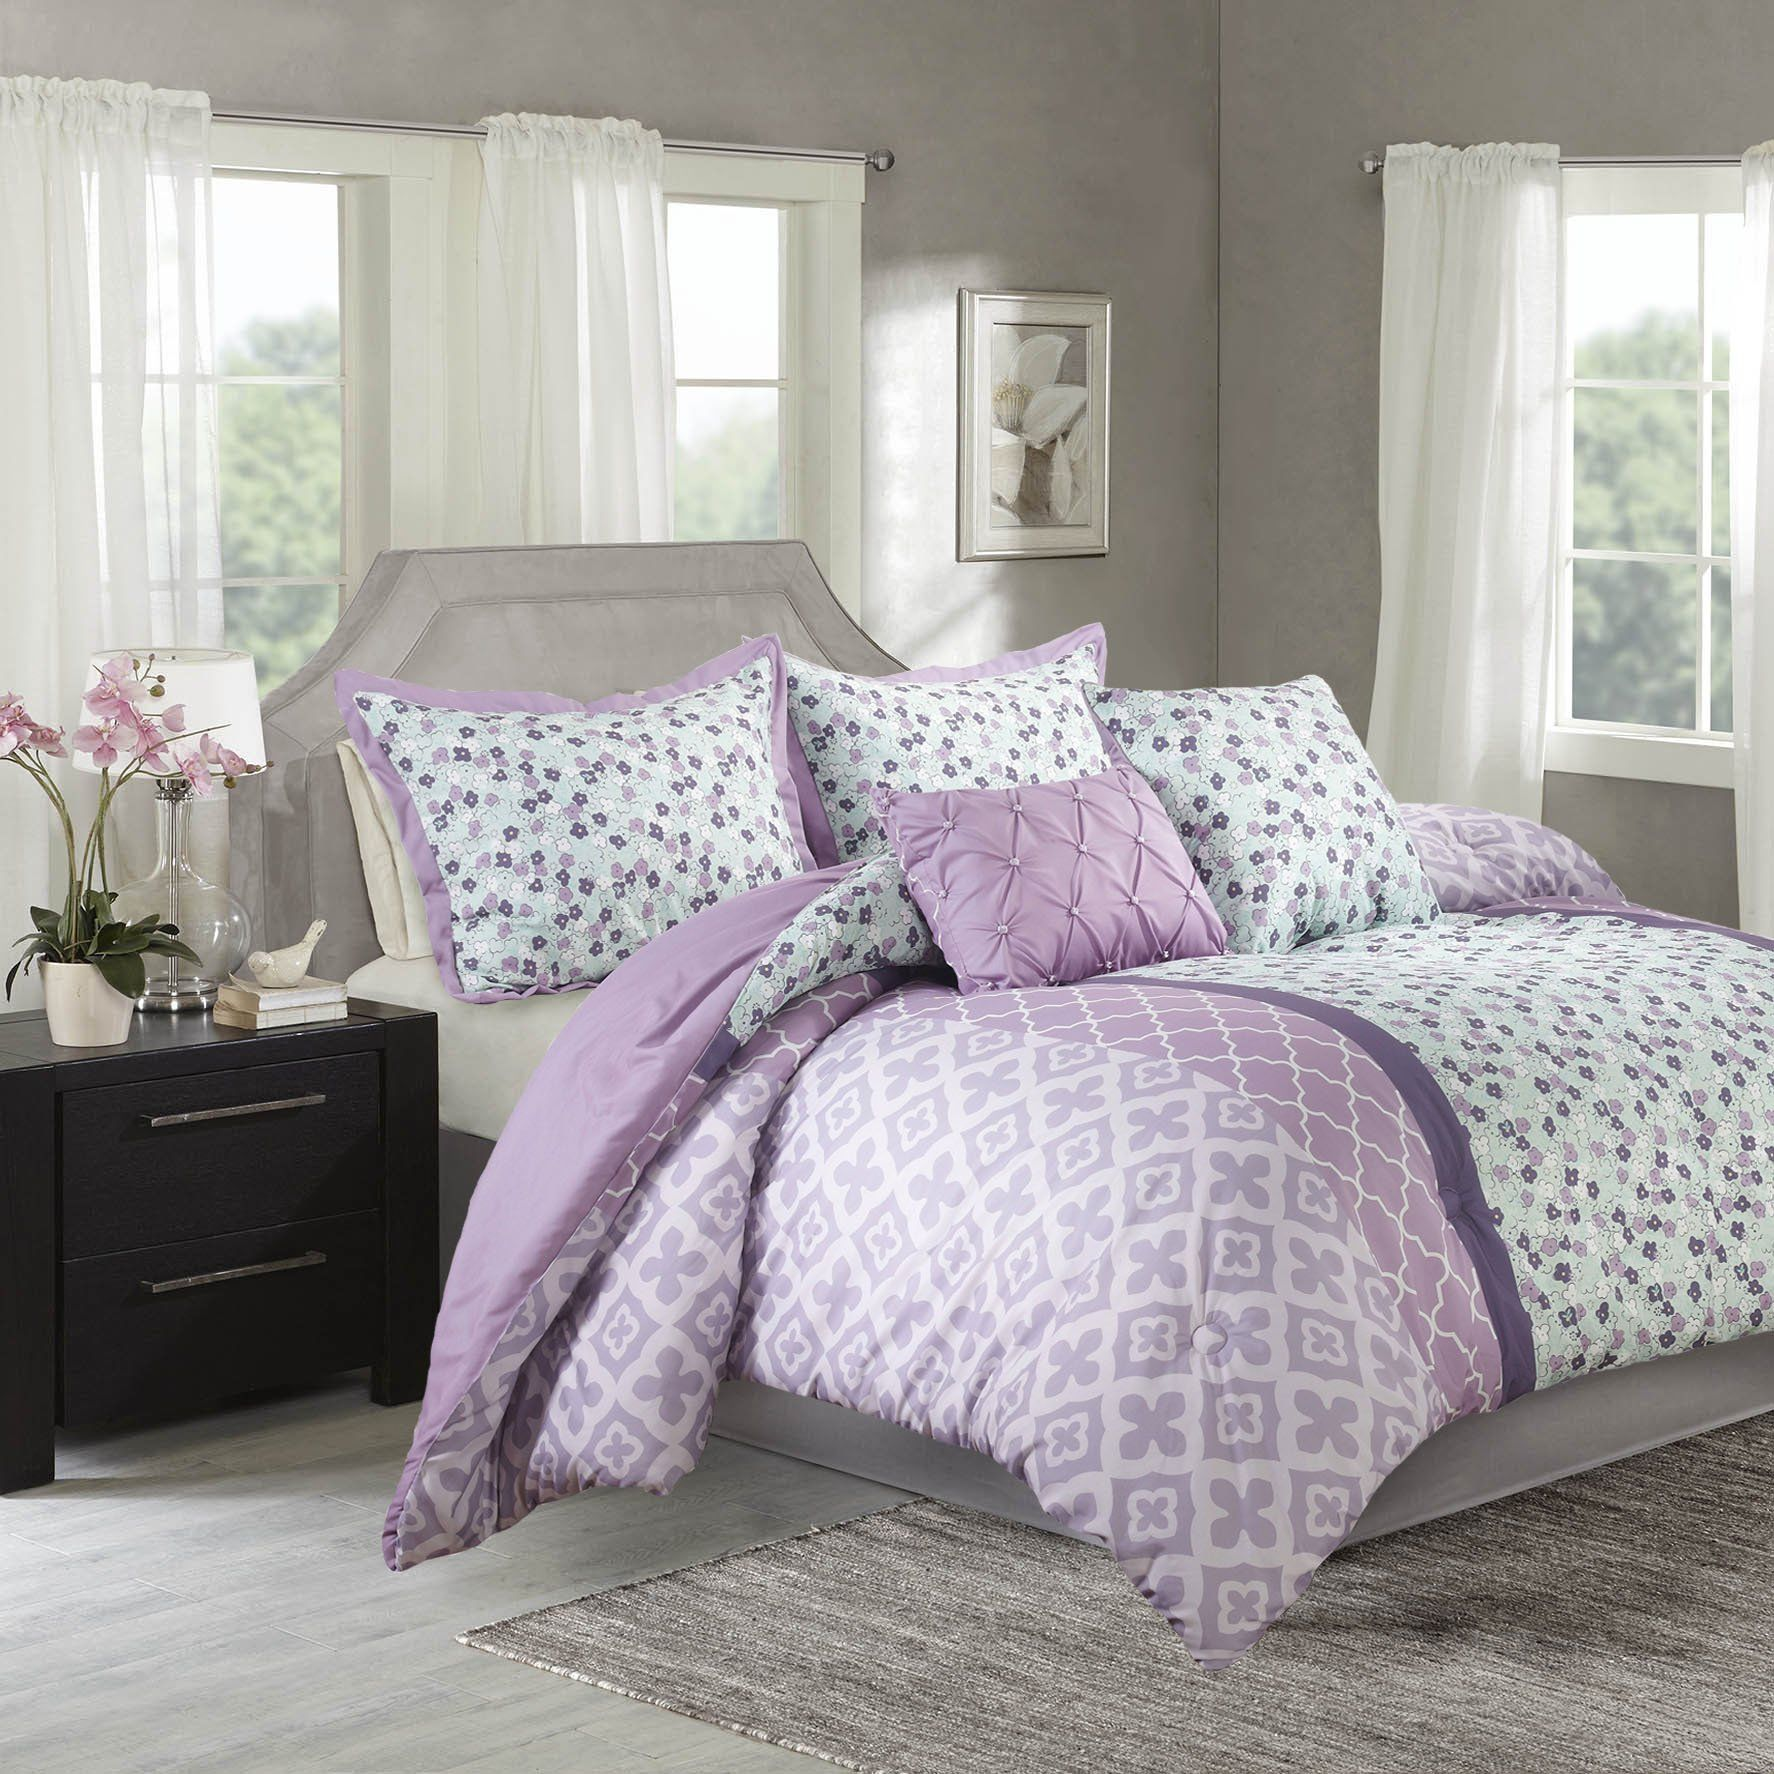 rc marvelous nice full ideas comforter inviting and house wells bedroom bed black as pertaining bedding showy size to ideasin x provide in sets purple multipurpose design with